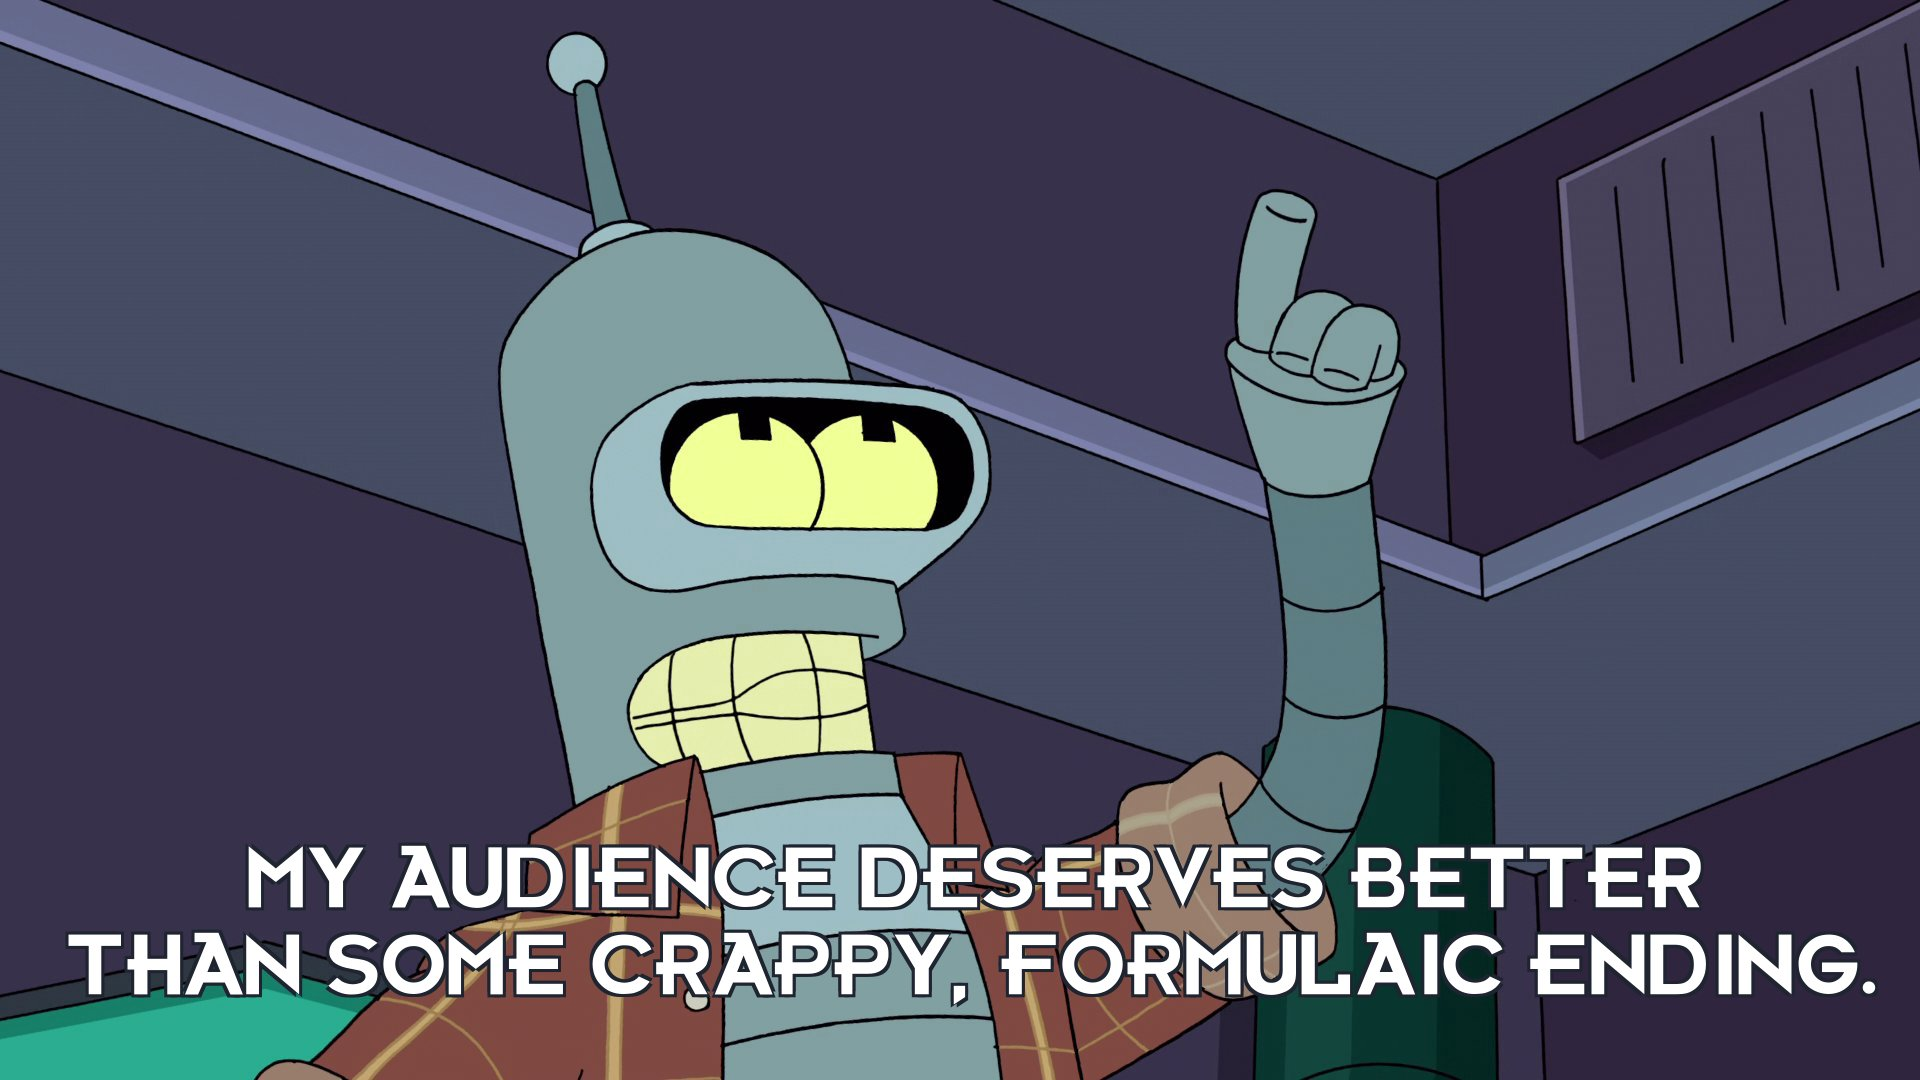 Bender Bending Rodriguez: My audience deserves better than some crappy, formulaic ending.